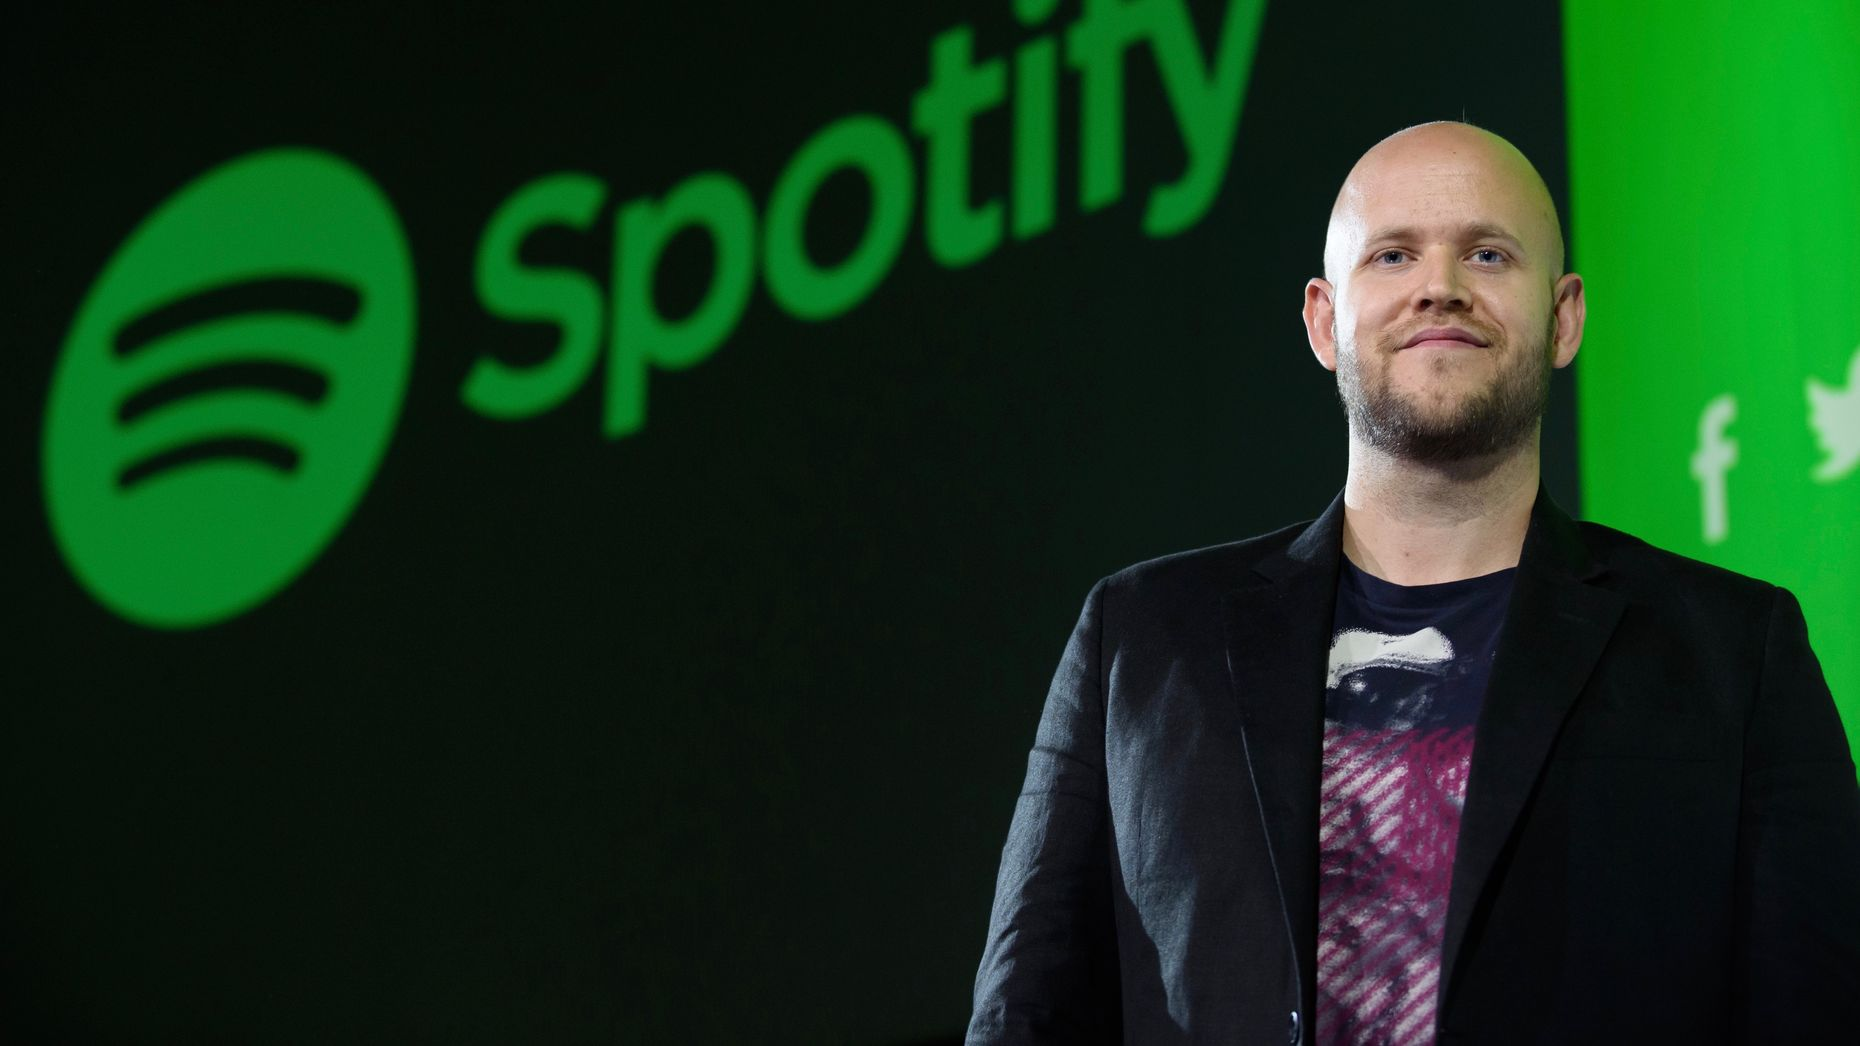 Spotify CEO Daniel Ek. Photo by Bloomberg.